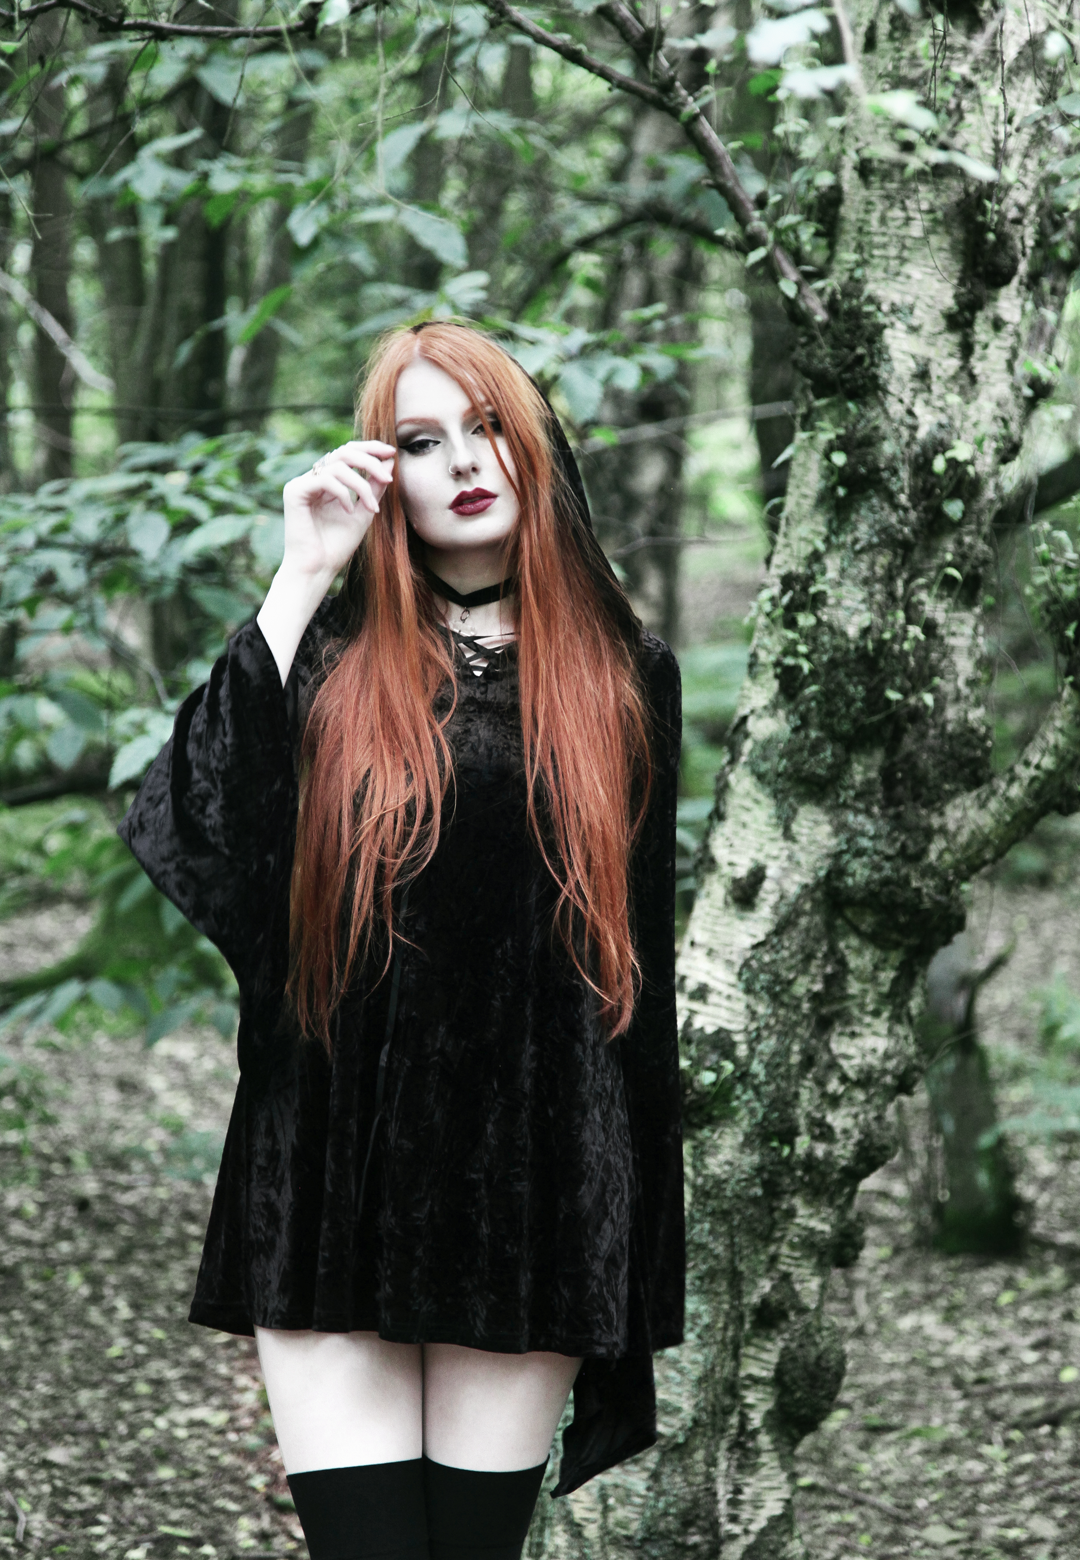 Olivia Emily wears Kilstar Velvet Witch Hood Dress and Regalrose Velvet Choker